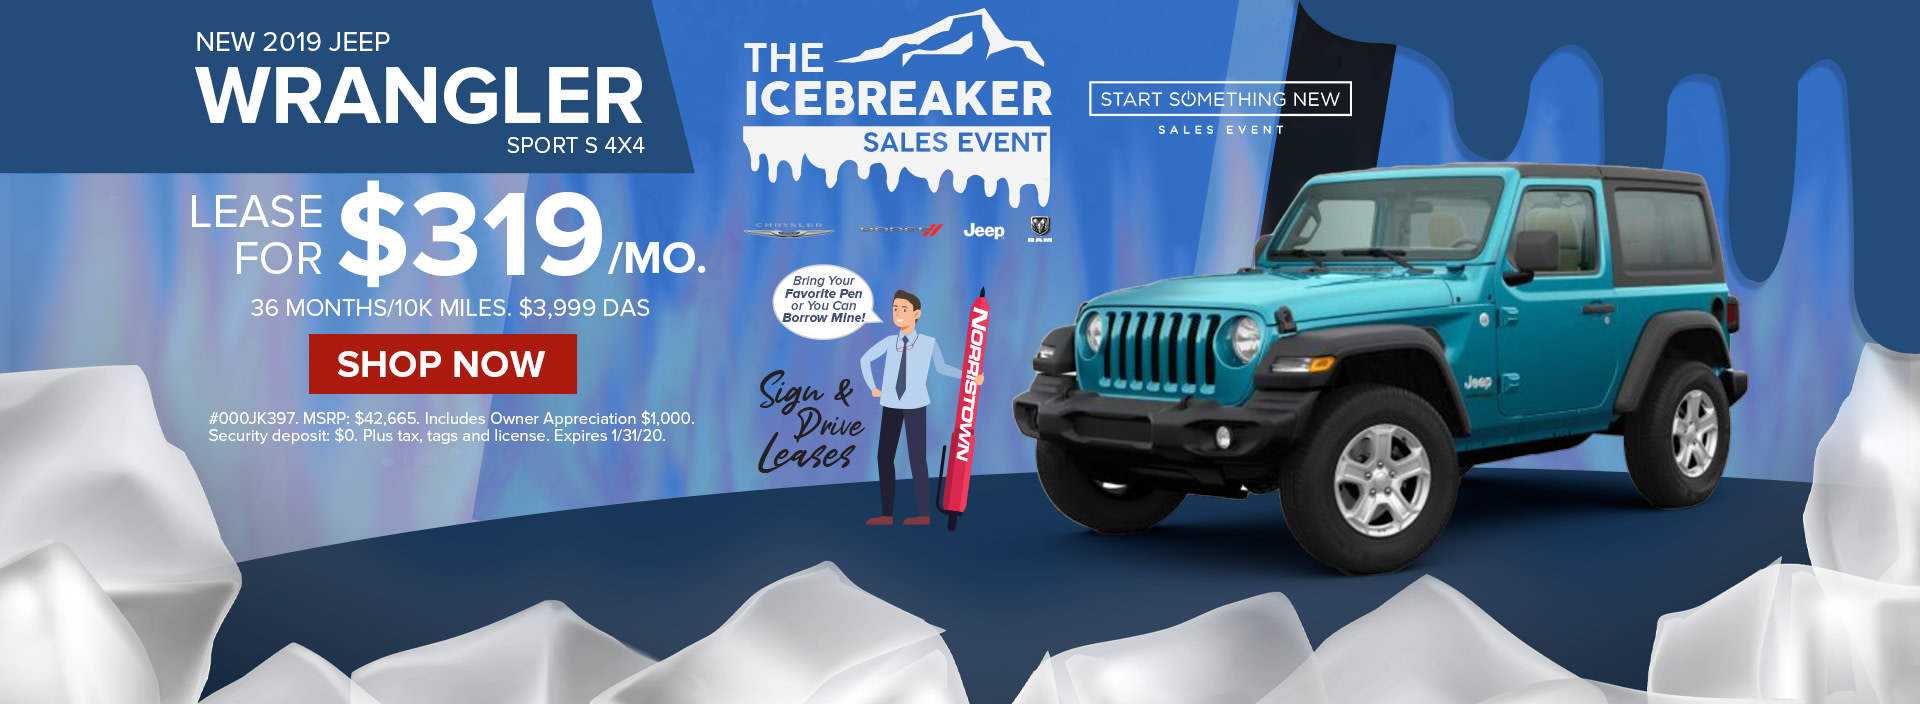 Lease a 2019 Jeep Wrangler for only $ 319/ month at Norristown!